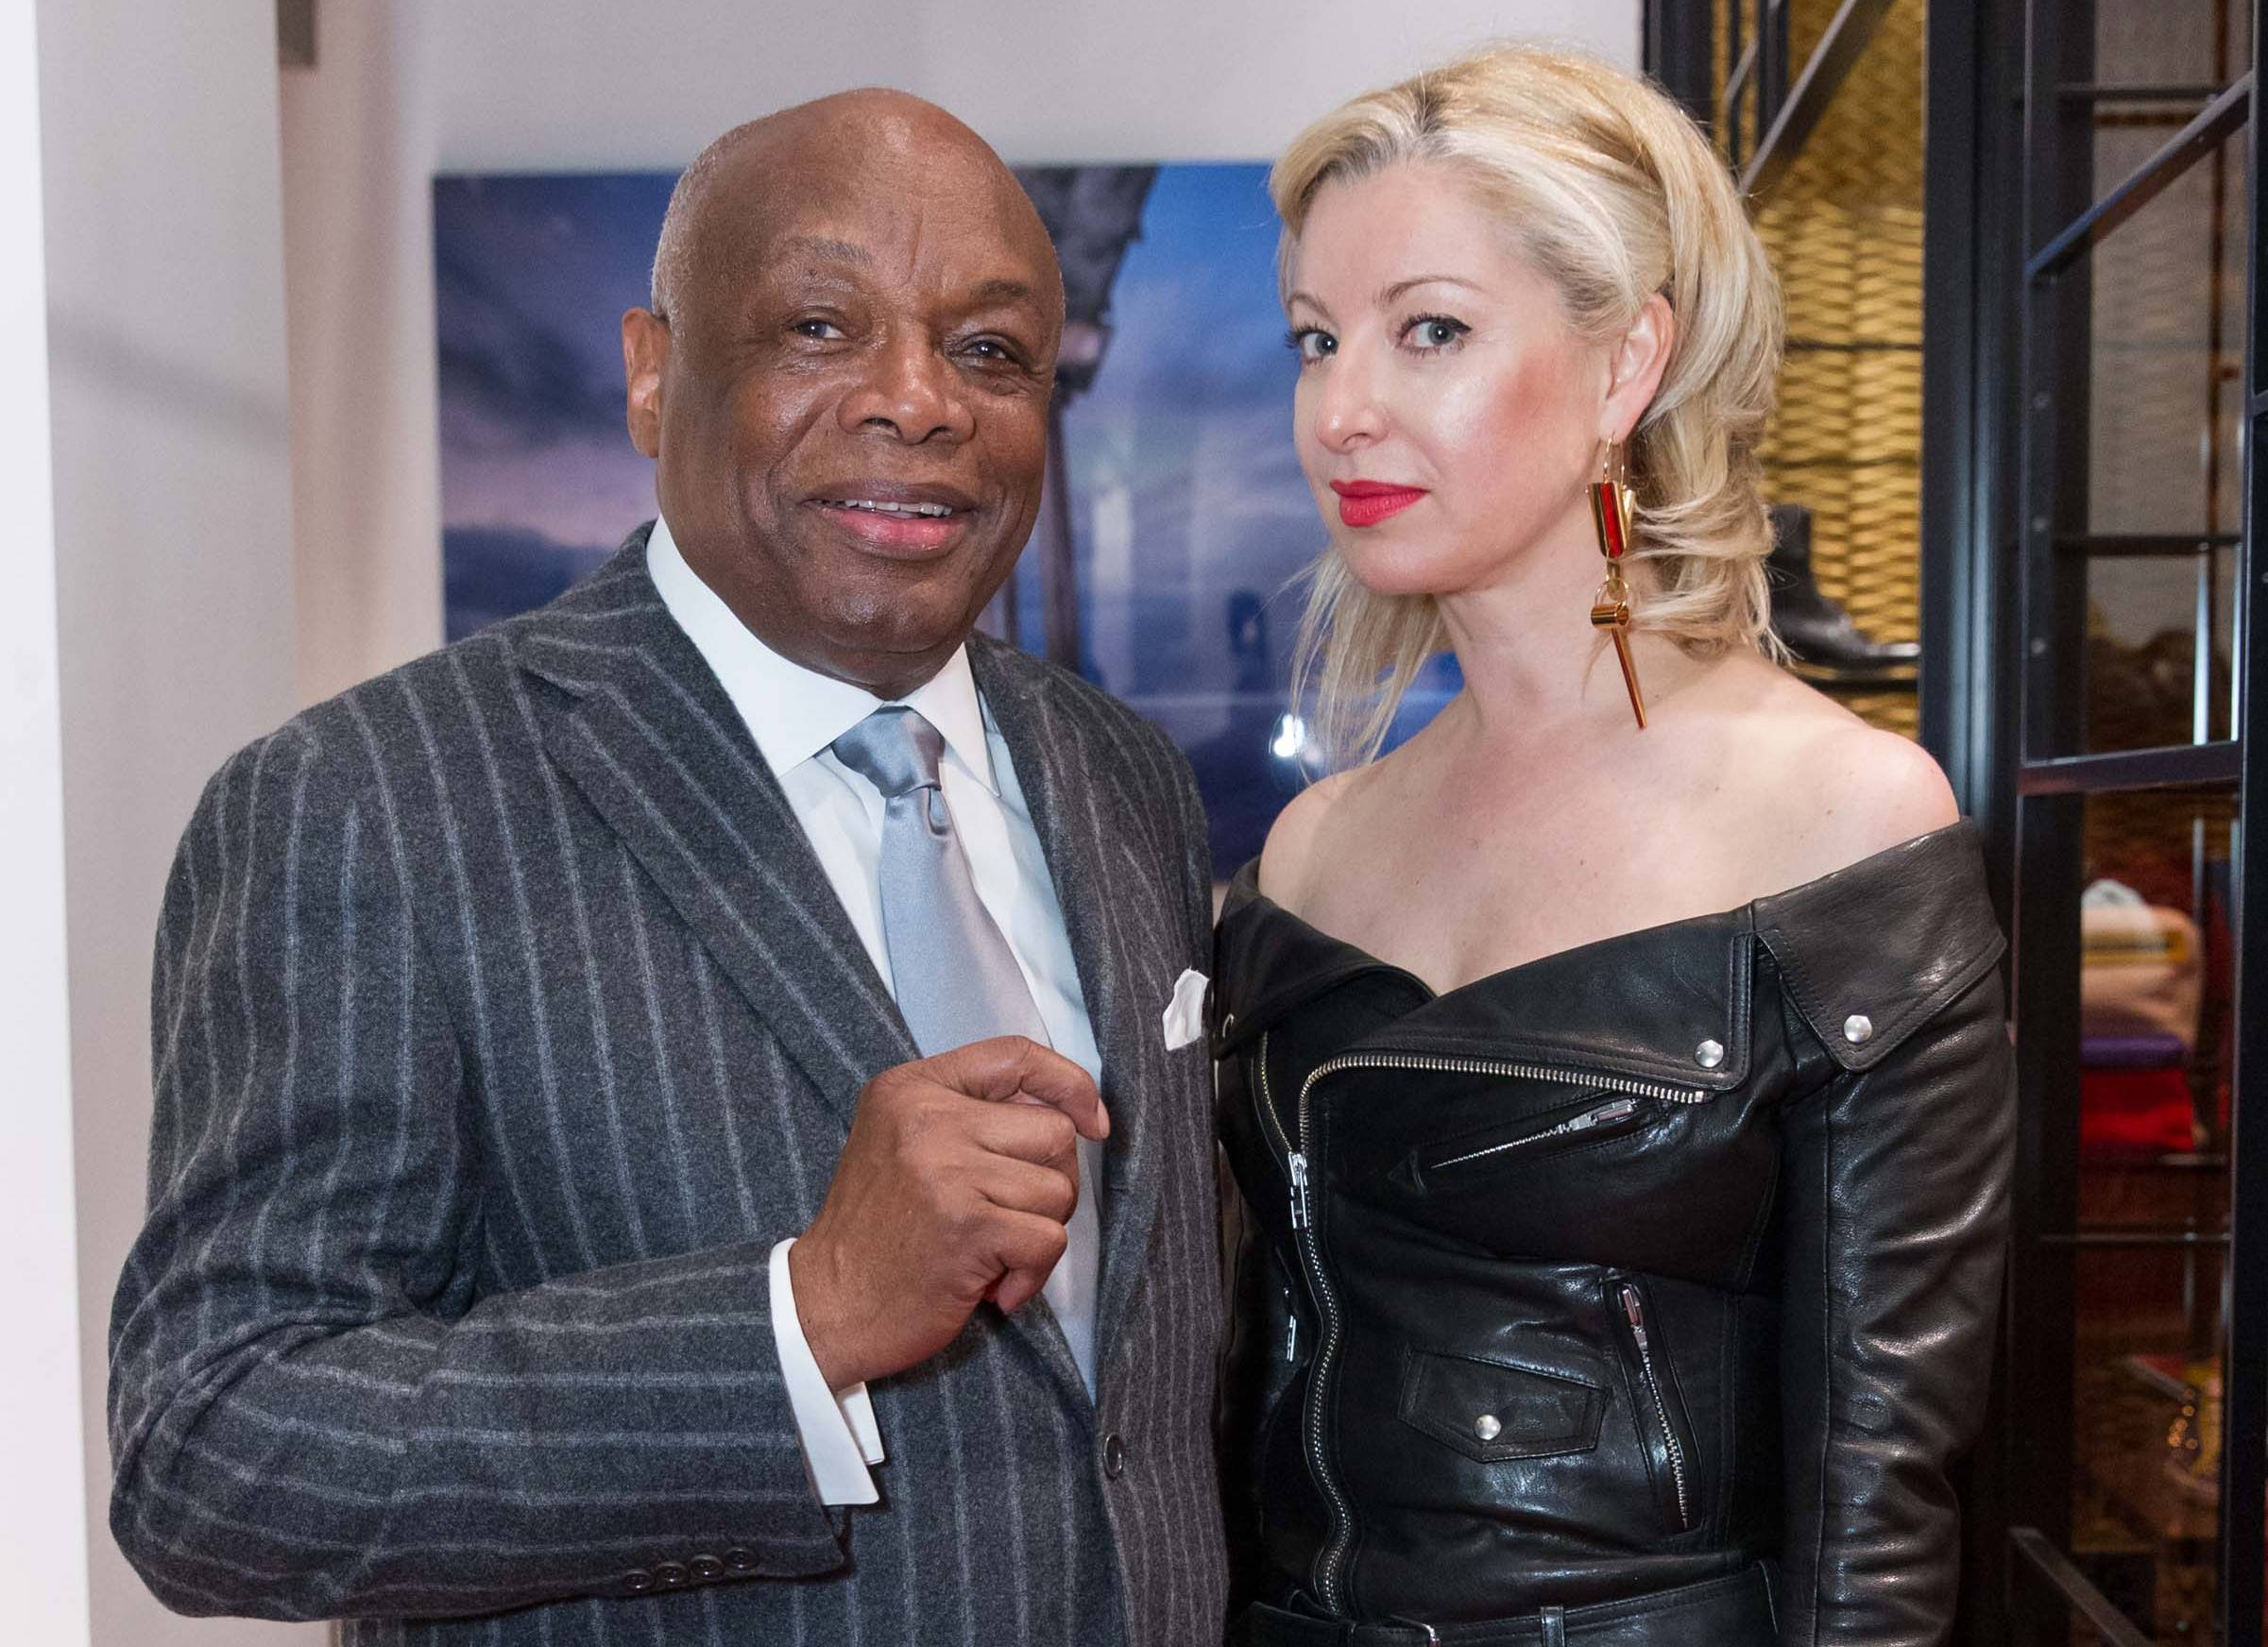 Willie Brown, Sonya Molodetskaya